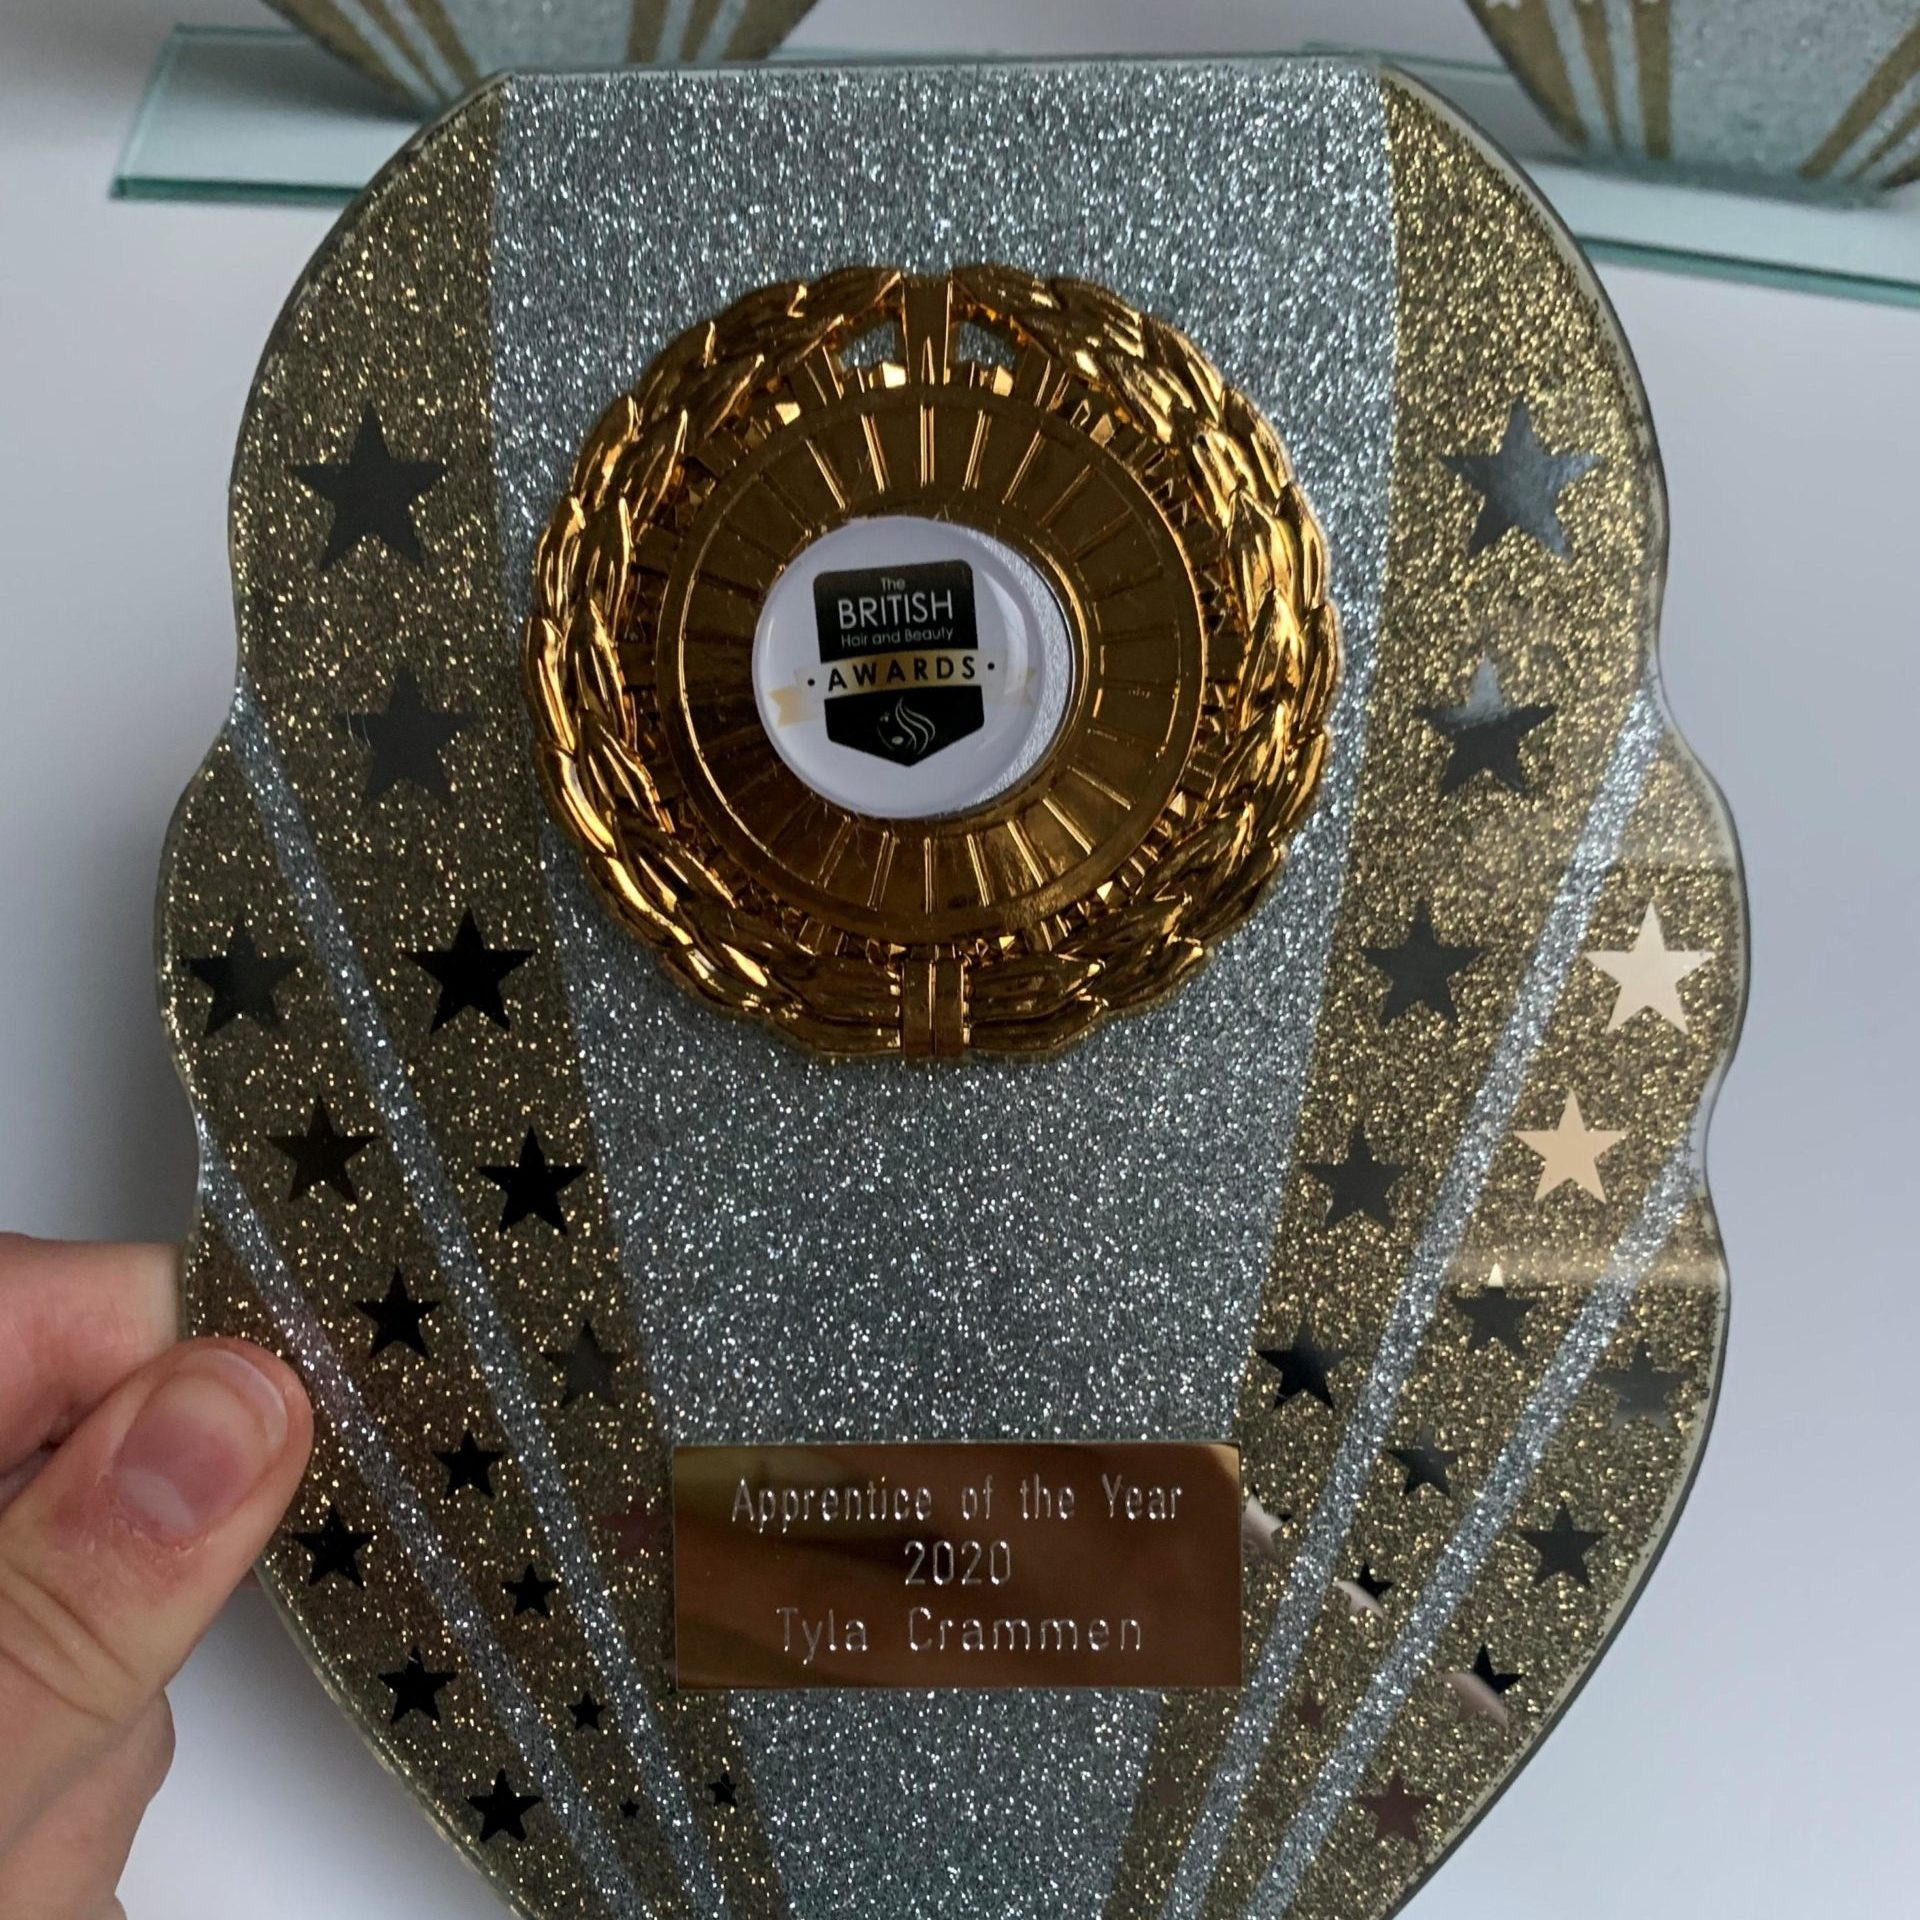 Tyla's award (wecompress.com)